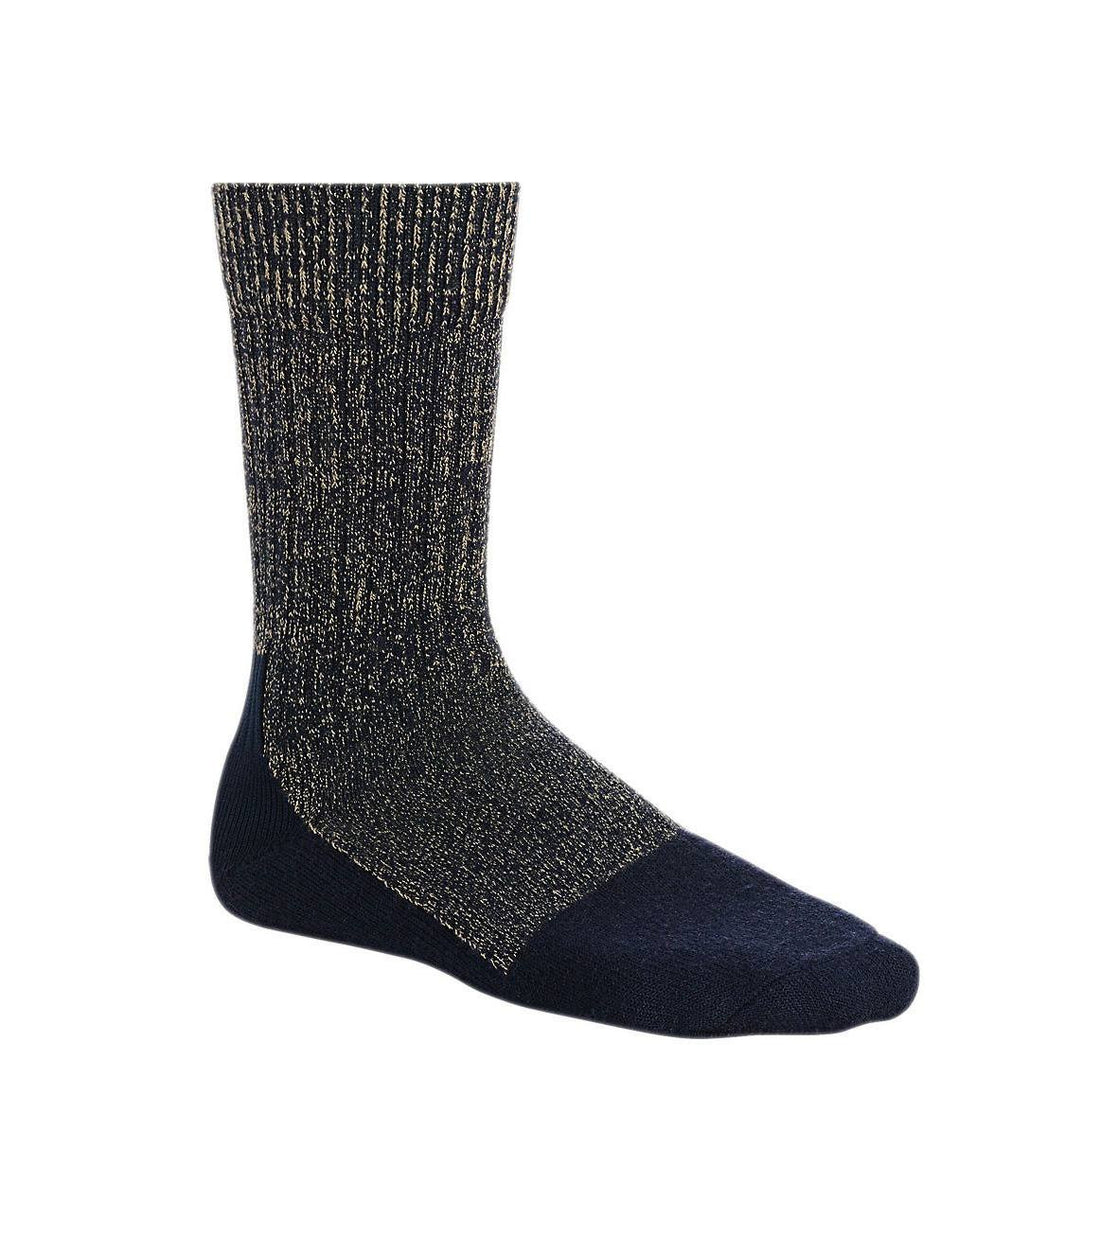 Red Wing Deep Toe Capped Wool Sock - Accessories: Socks - Iron and Resin